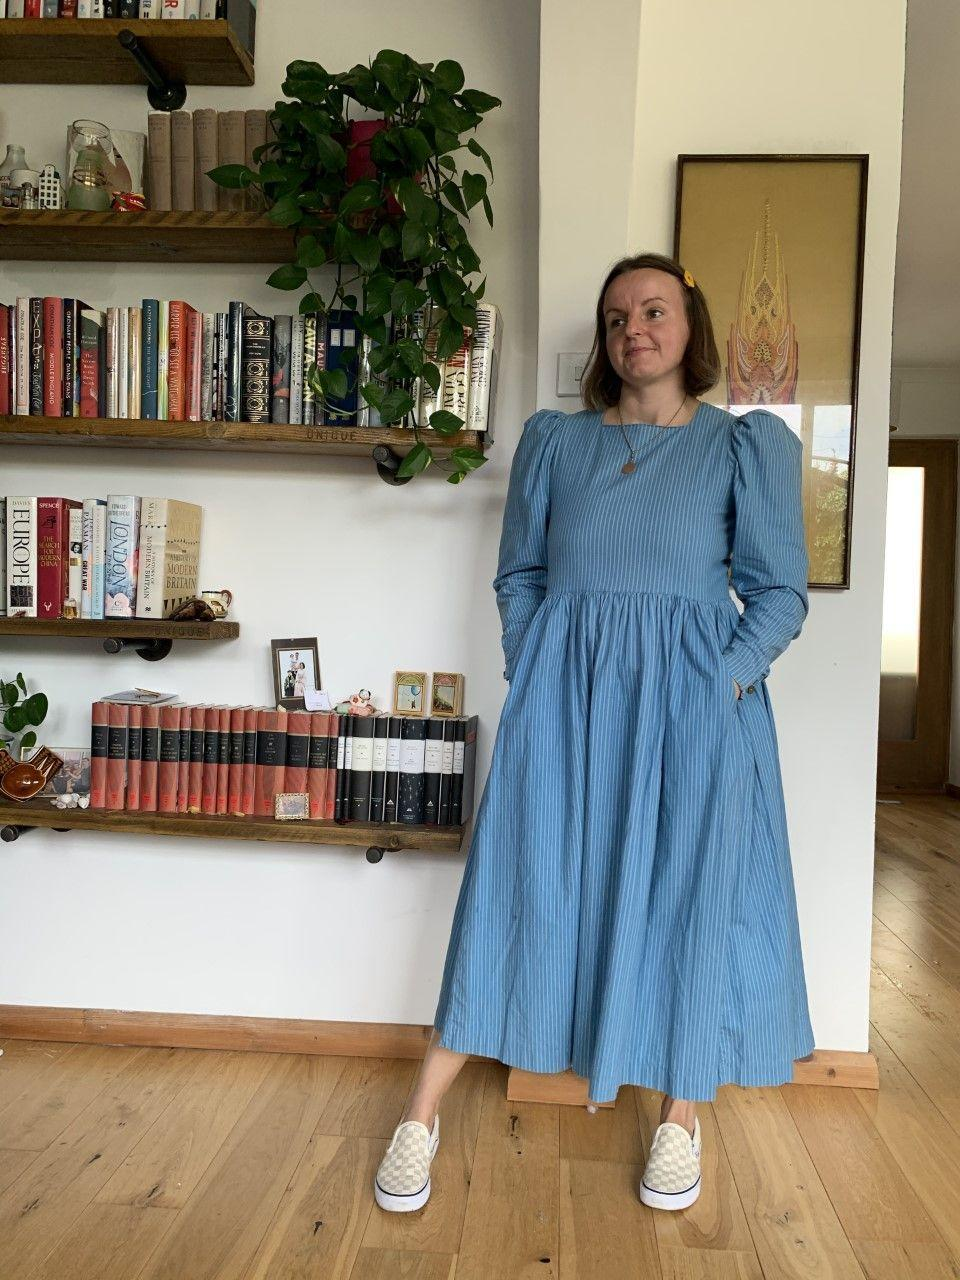 """<p>A one-stop-shop for homeware and clothing alike, Mary's Vintage, ran by Rachel Entwistle, is a great place to nab both rattan furniture and prairie dresses.</p><p>'Mary's Vintage is a lifestyle brand allowing the shopper to bring vintage not only into their wardrobe but also their home,' Entwistle said to ELLE UK.</p><p>'Each piece is hand selected creating that special one off feeling only vintage can bring.'</p><p><a class=""""link rapid-noclick-resp"""" href=""""https://www.marysvintage.co.uk/"""" rel=""""nofollow noopener"""" target=""""_blank"""" data-ylk=""""slk:SHOP MARY'S VINTAGE NOW"""">SHOP MARY'S VINTAGE NOW</a></p>"""